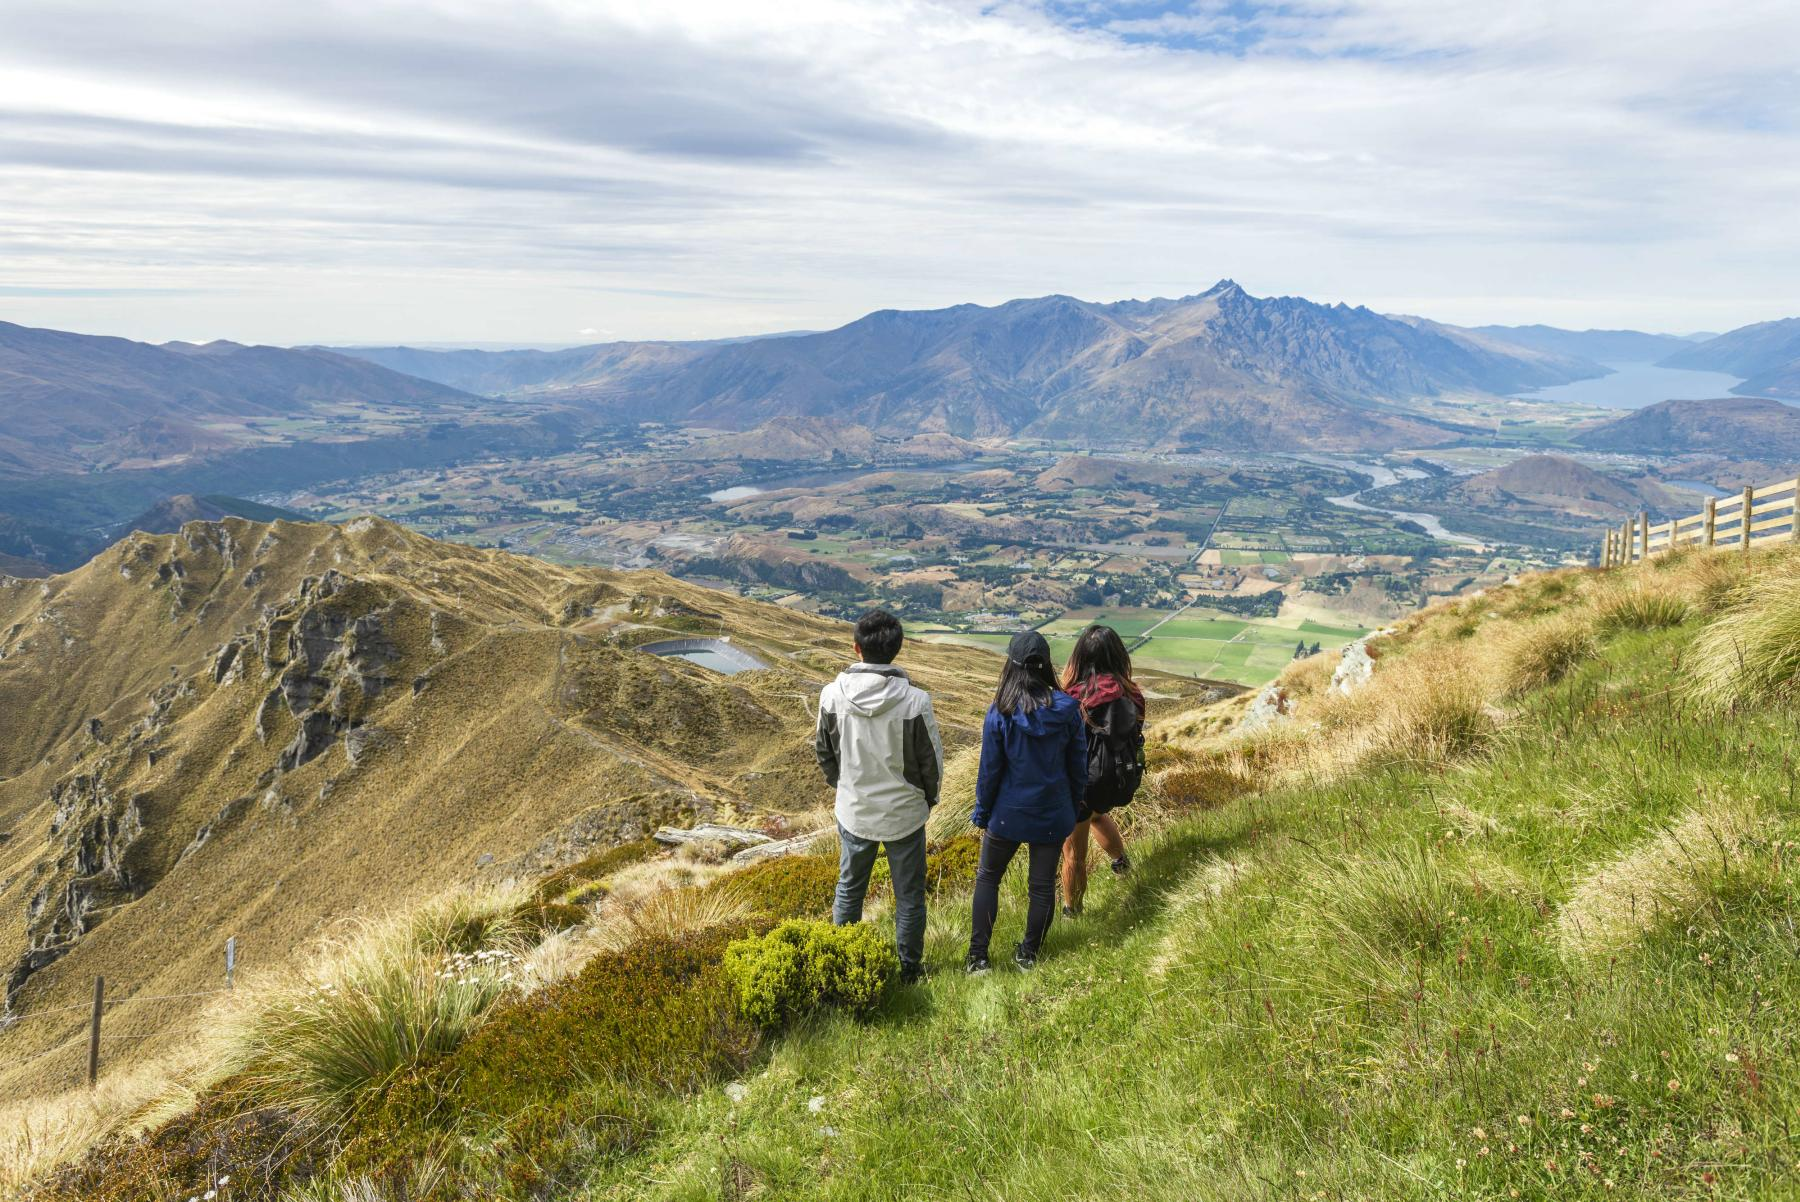 Summer sightseeing at Coronet Peak